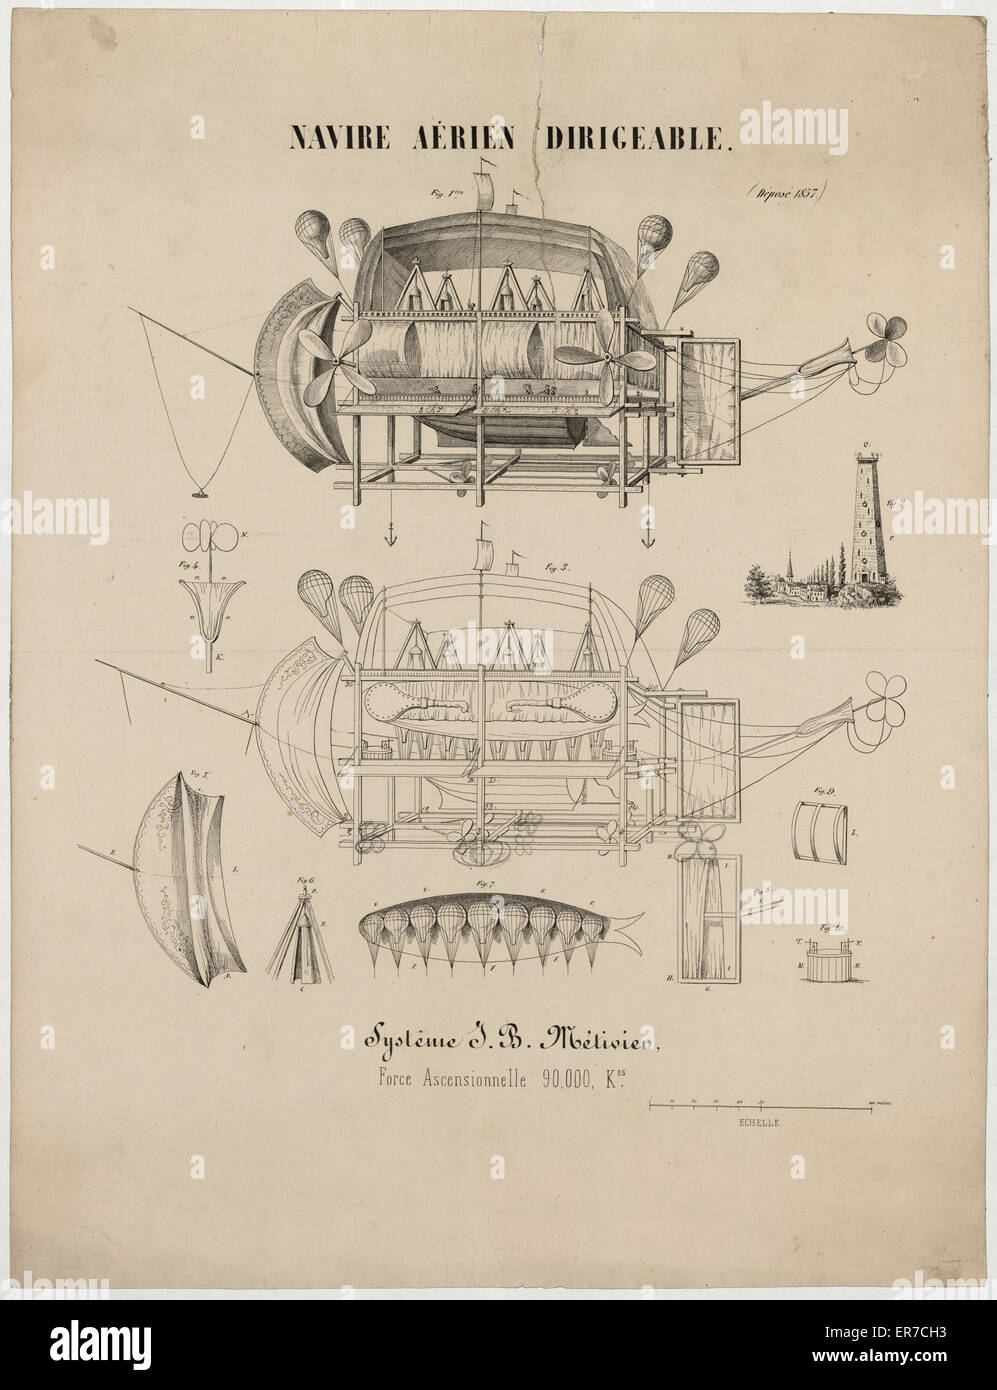 Navire aerien dirigeable. Systeme JB Metivier, force ascensionnelle 90,000 kos. Scaled design drawing for a patent - Stock Image